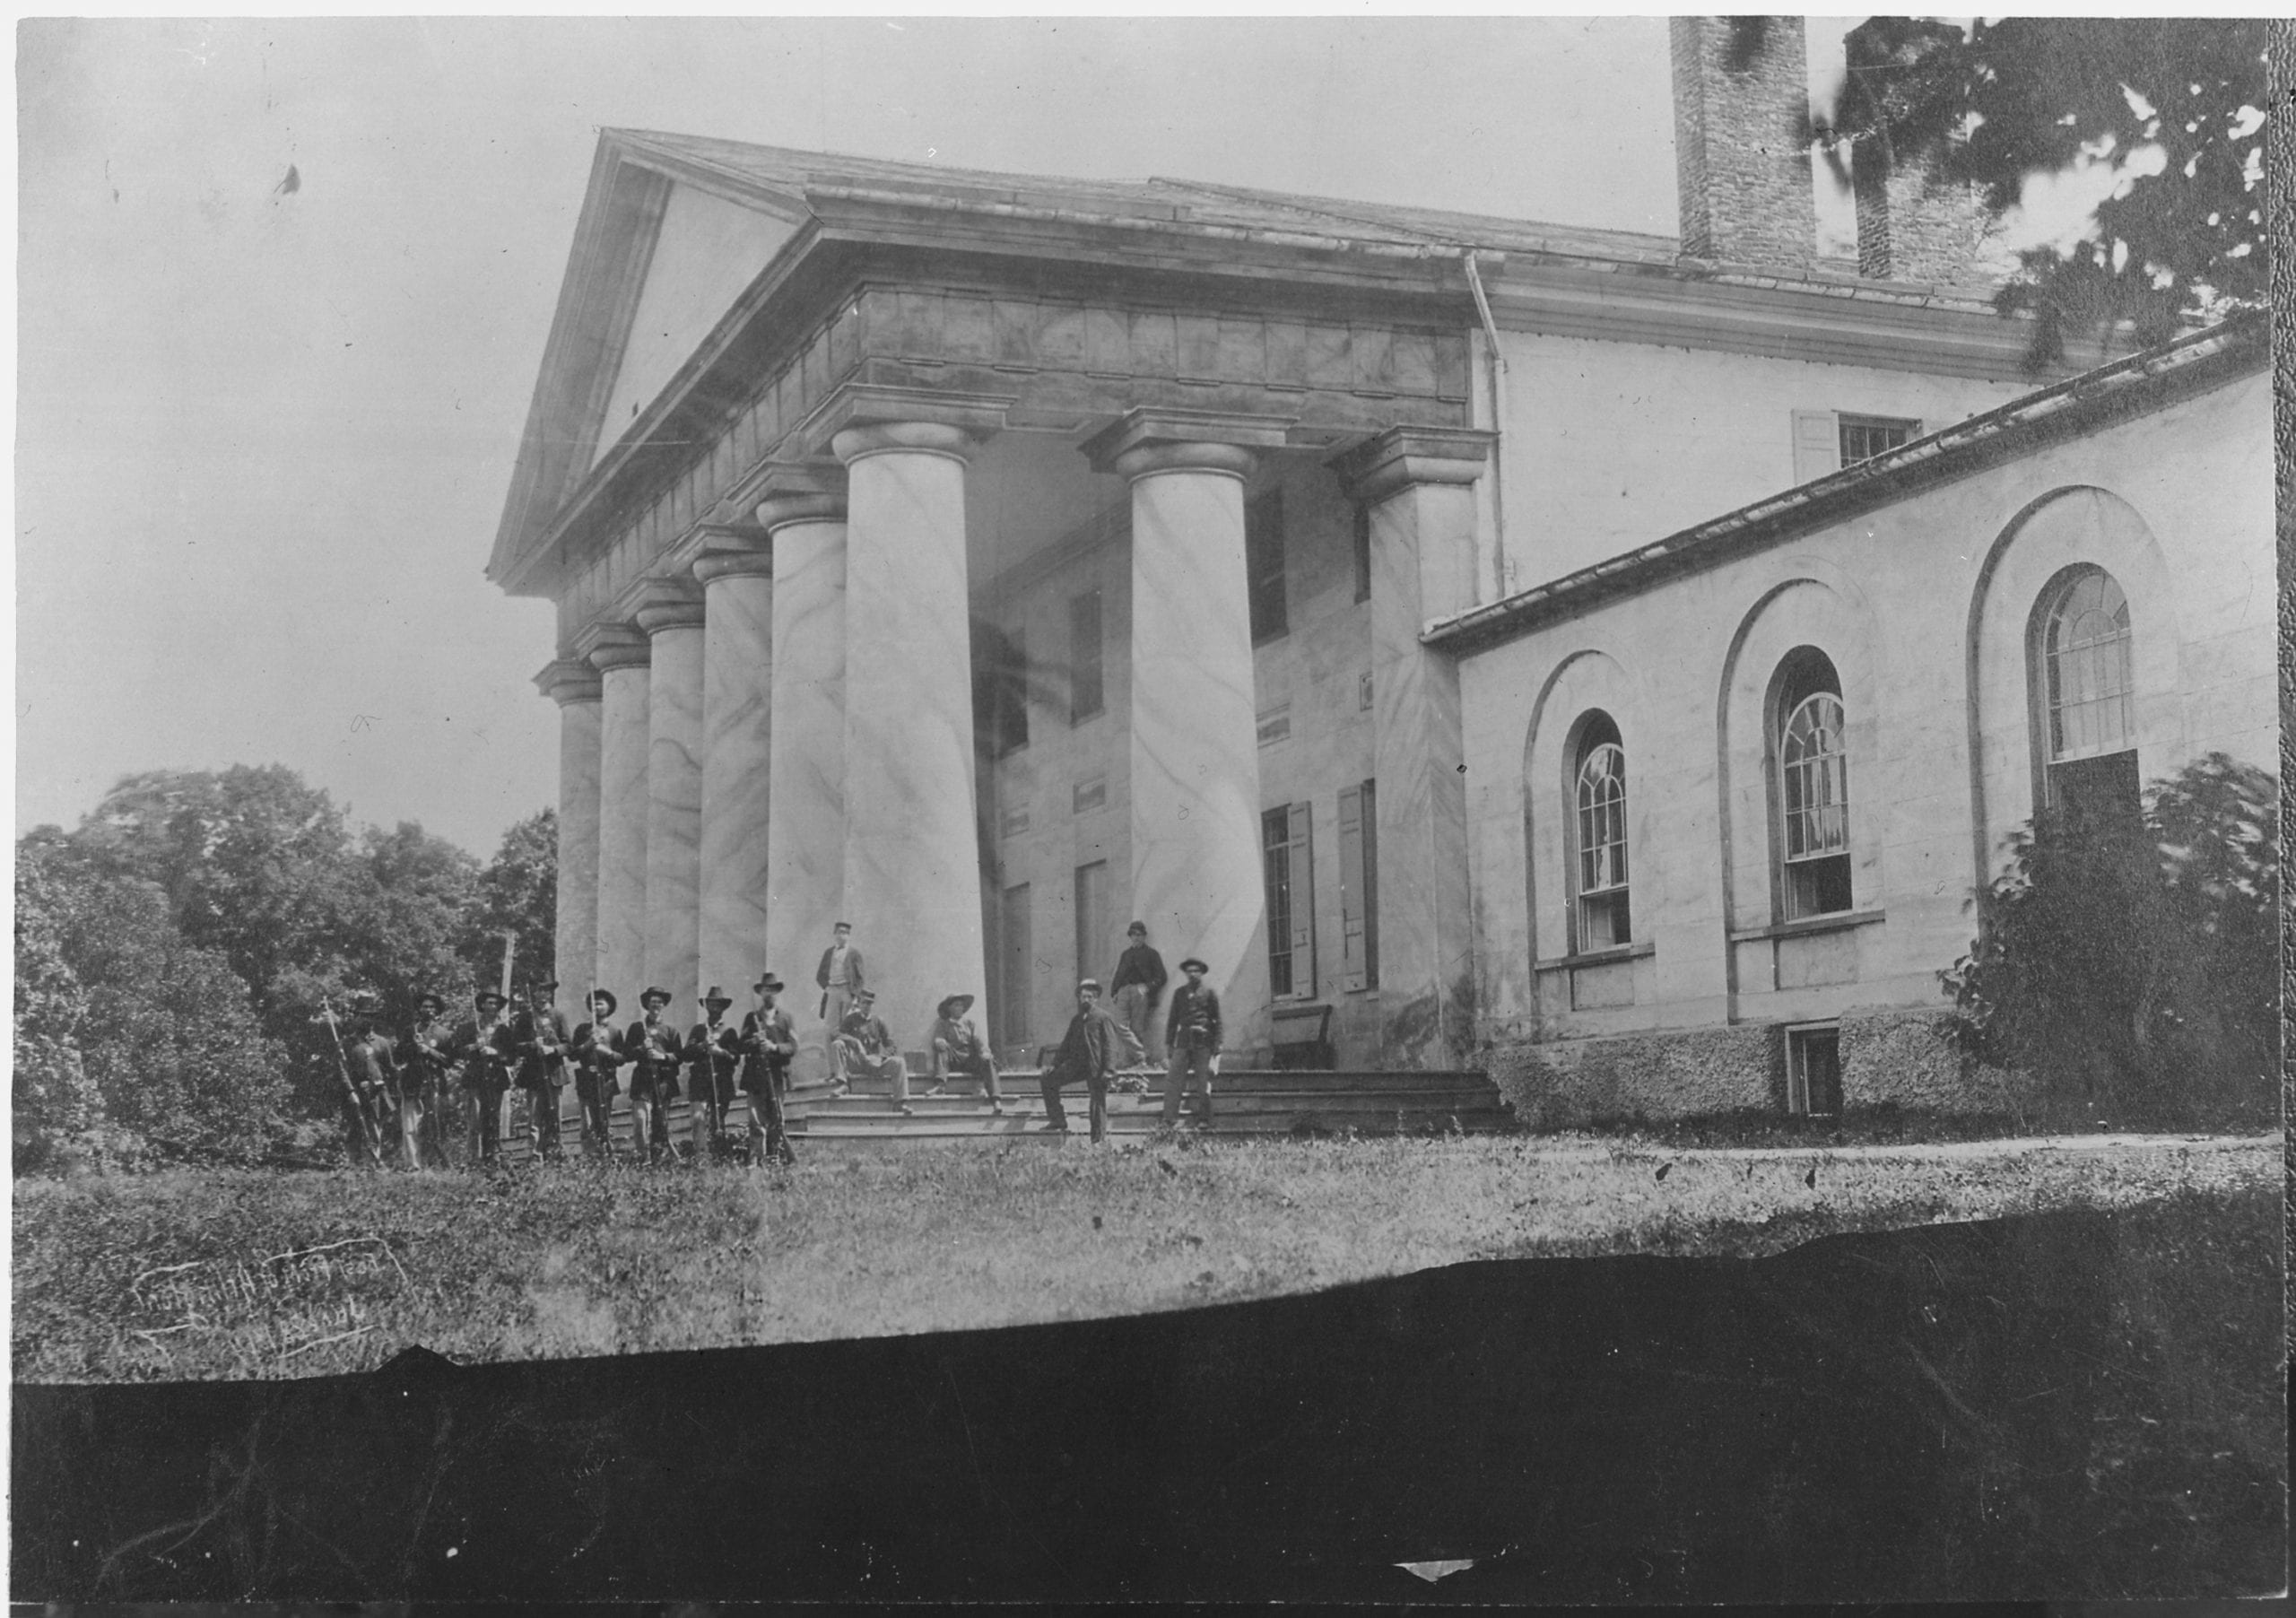 Great Civil War Photo of Arlington House and Soldiers